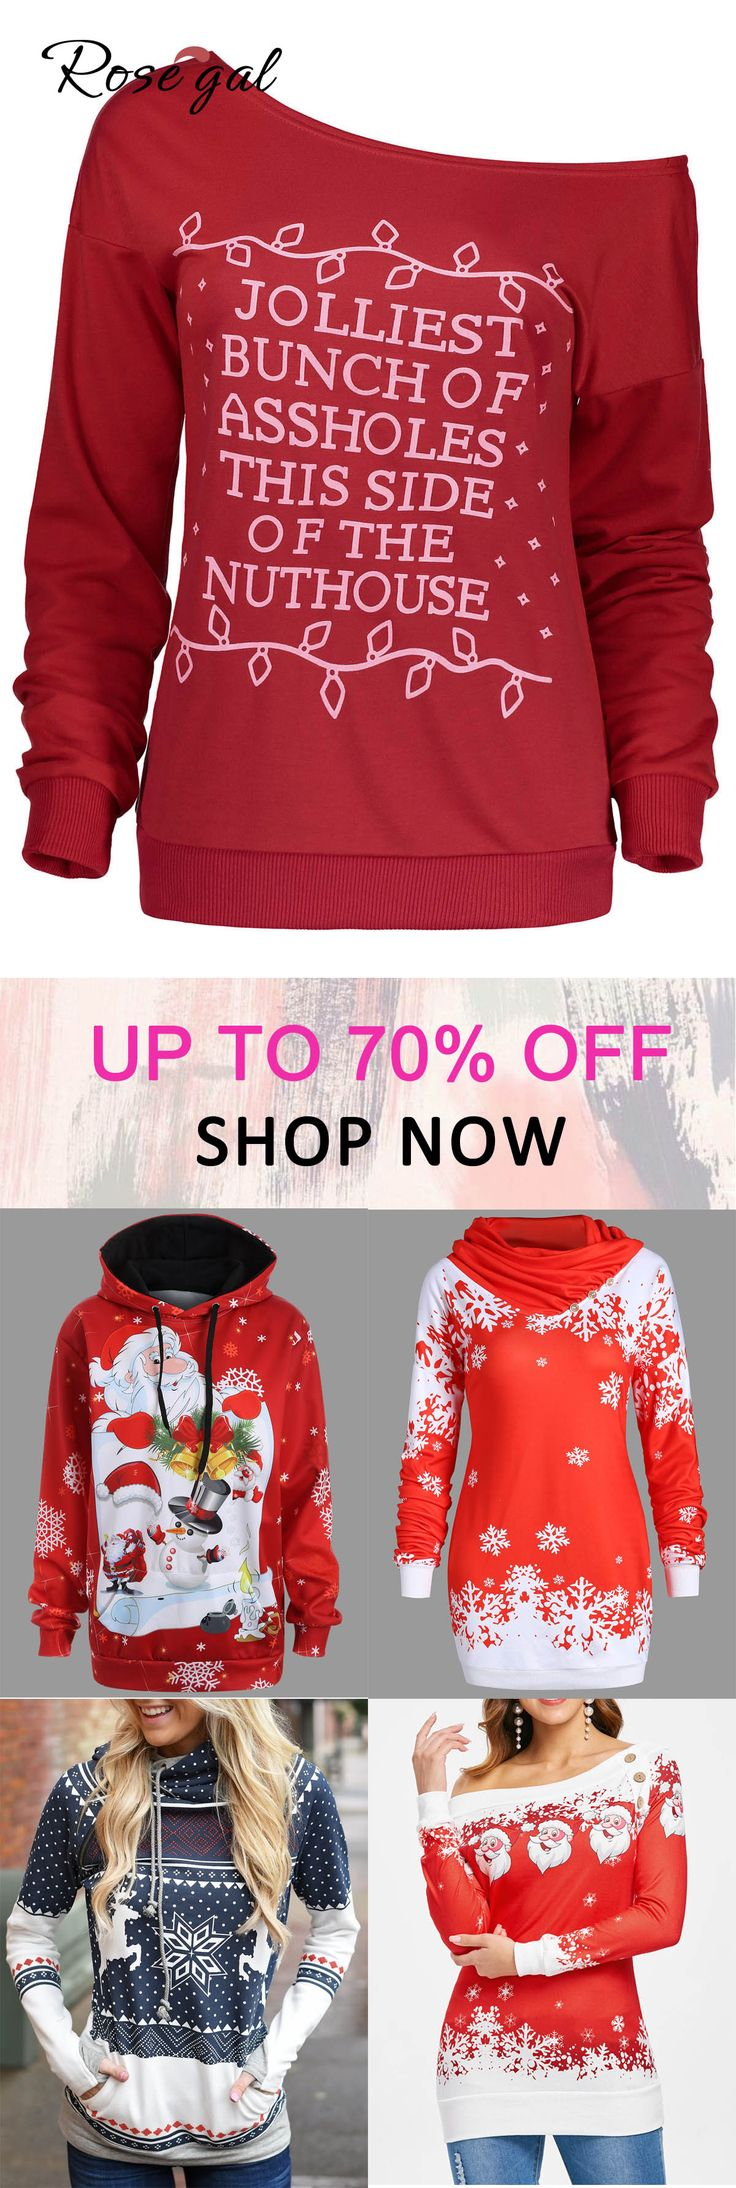 Women's Christmas outfits ideas